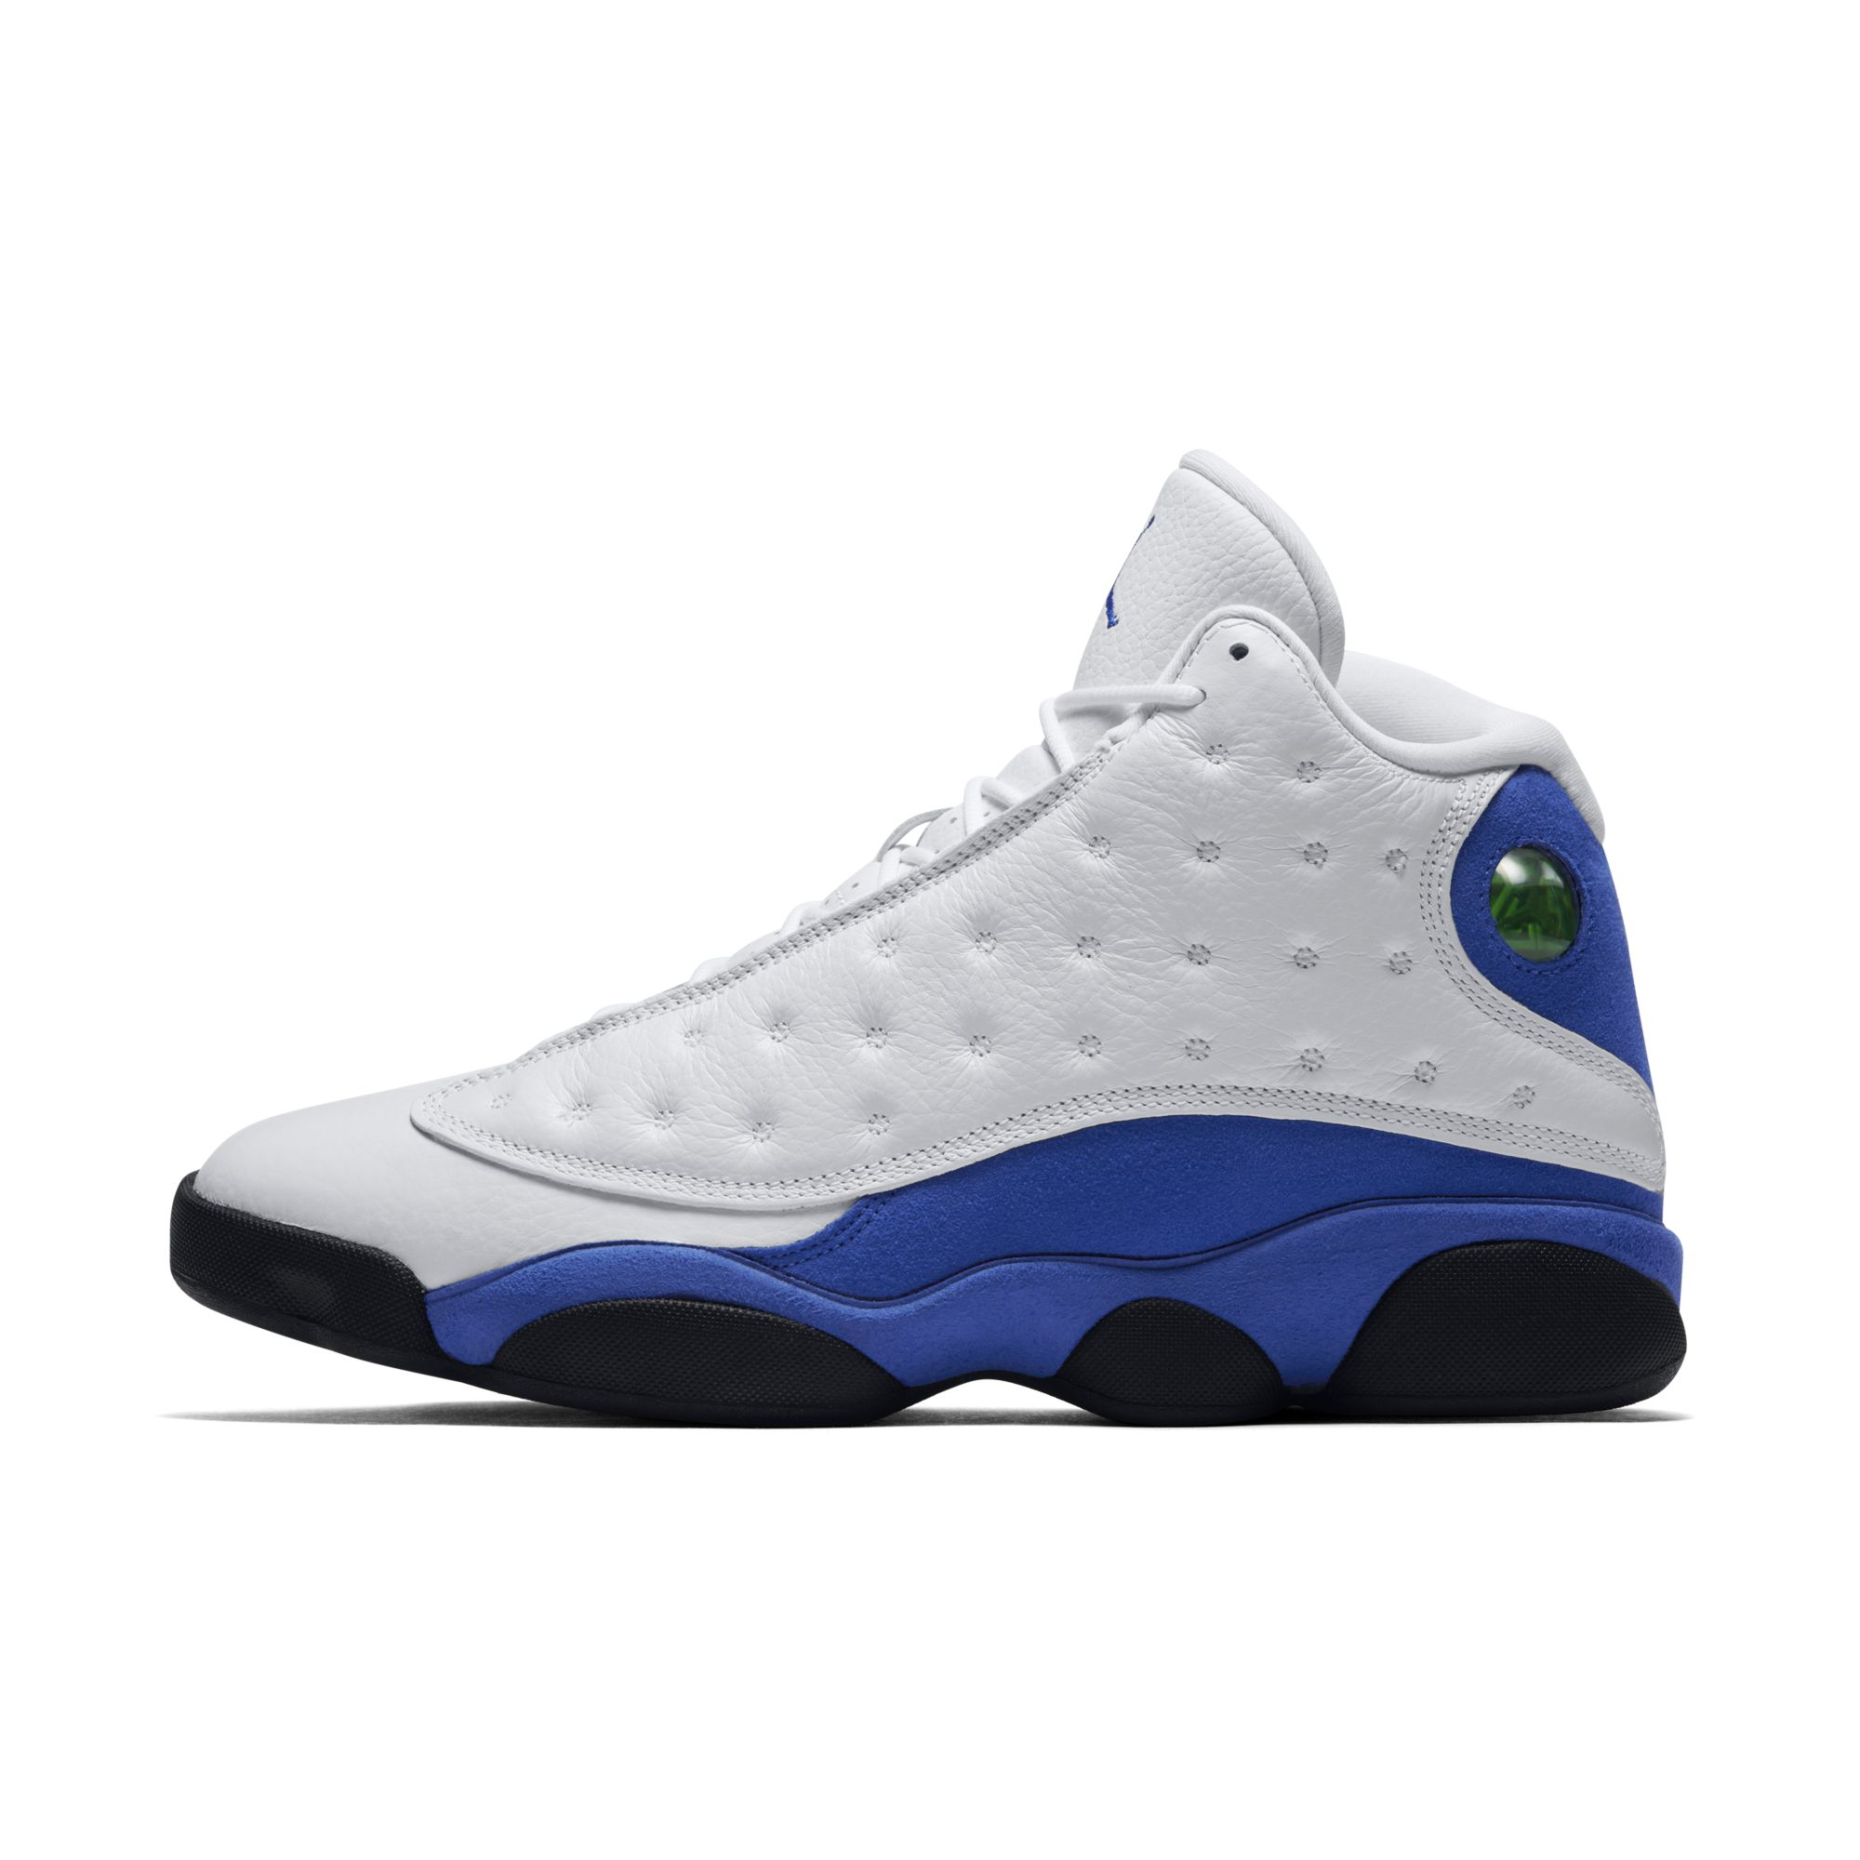 superior quality 150e7 cc735 Nike Air Jordan 13 Retro White Hyper Blue 414571-117 1.png v 1535025903